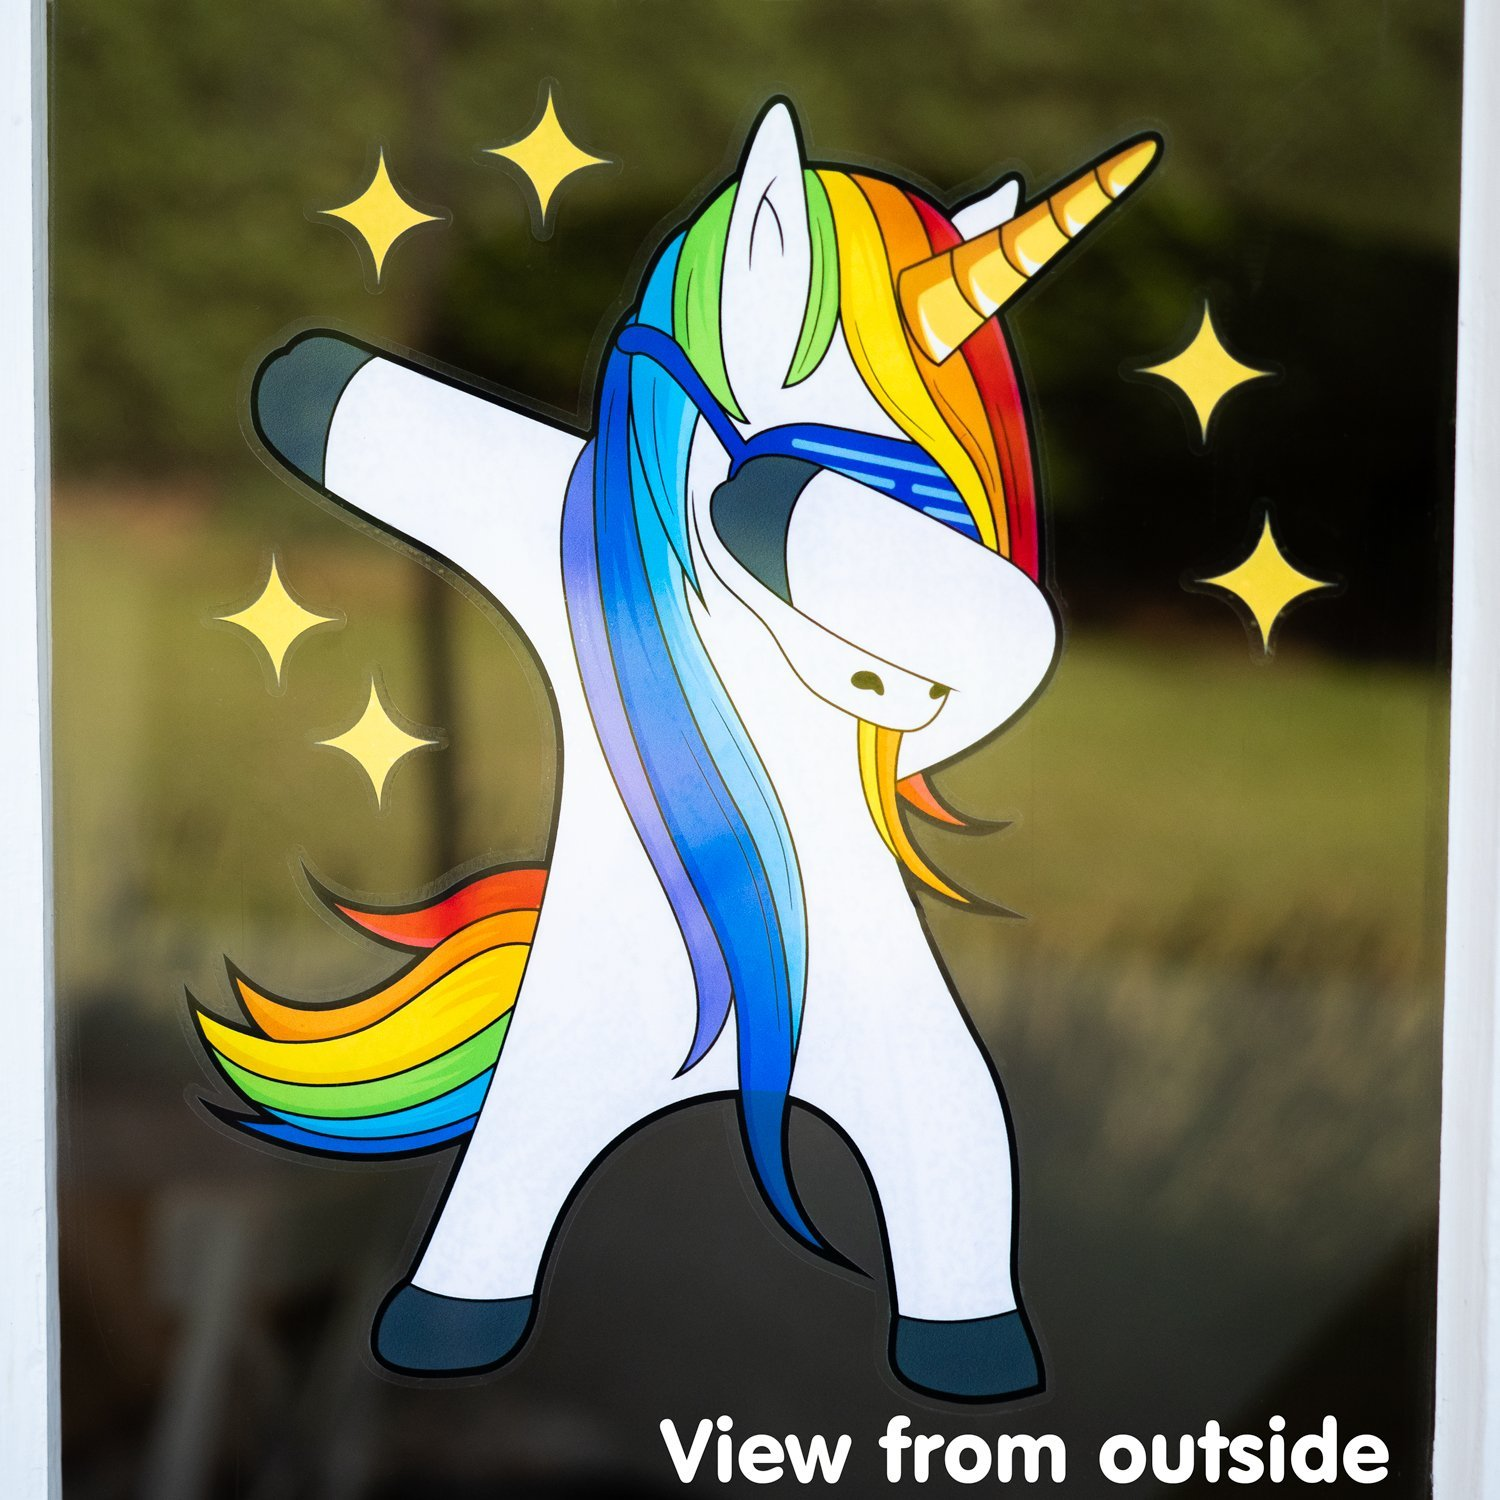 Rainbow unicorn window cling sticker double sided dabbing unicorn gifts for girls amazon co uk kitchen home